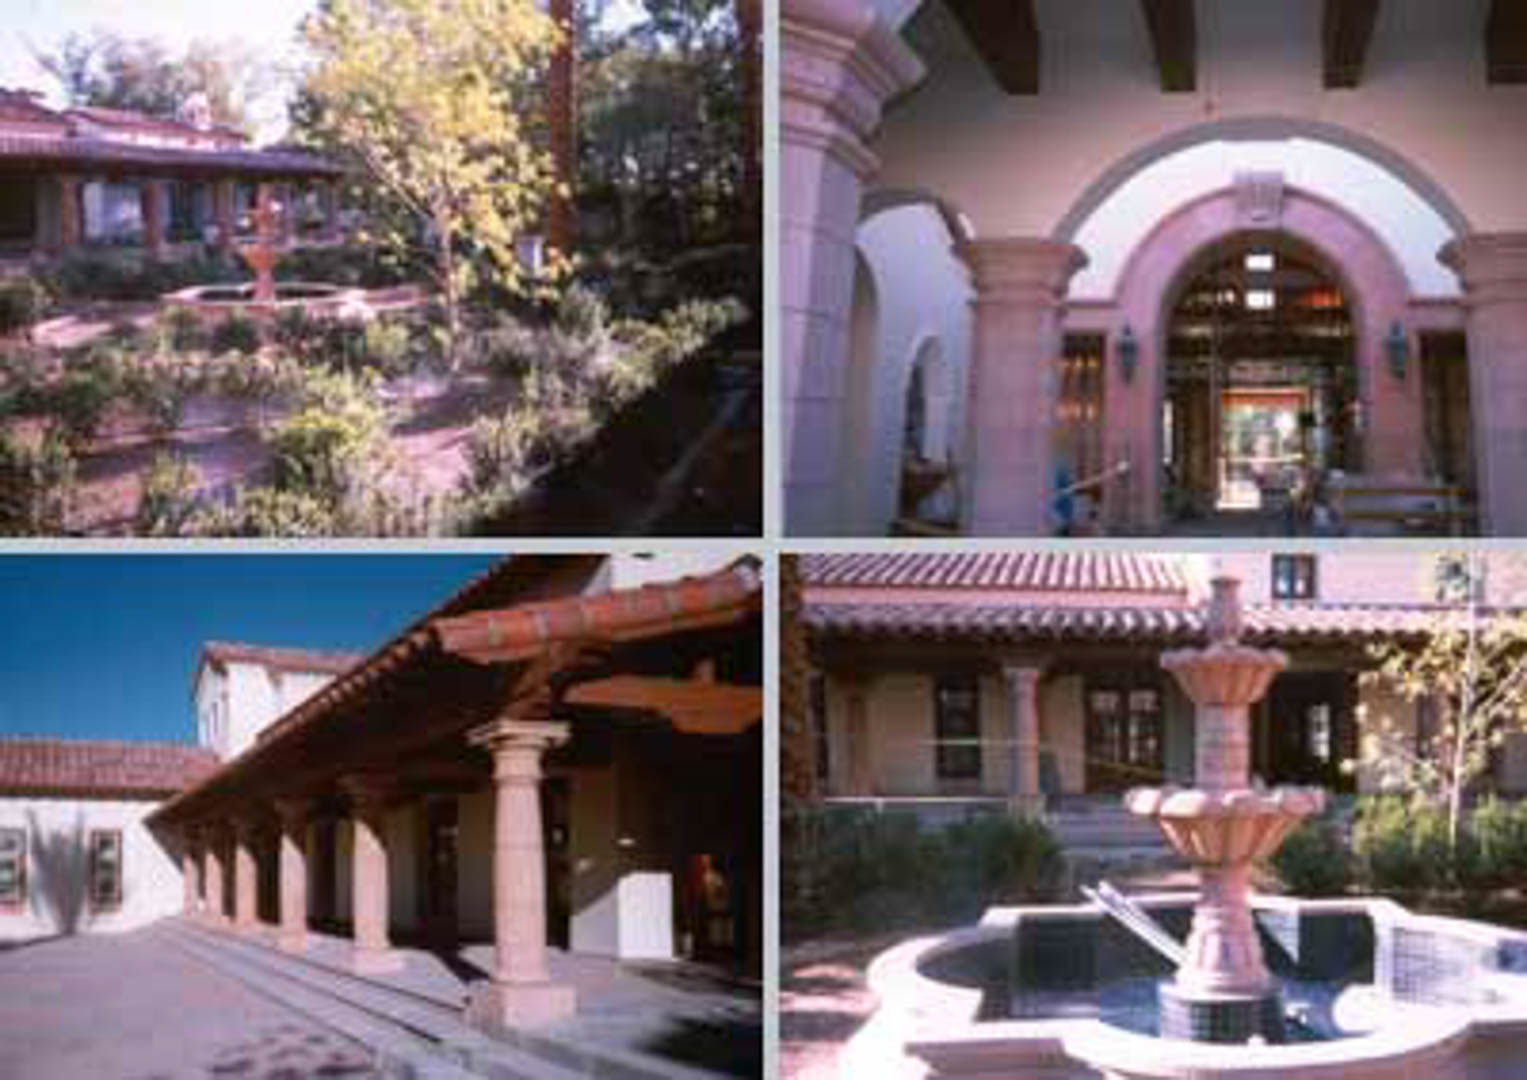 Project:  Private Ranch Villa   Location:  Cannot be disclosed   Description:  Over 200 Cantera stone columns were installed along with 65,000 square feet of paving and cladding. Look closely at the hand carved molding and fountain work.